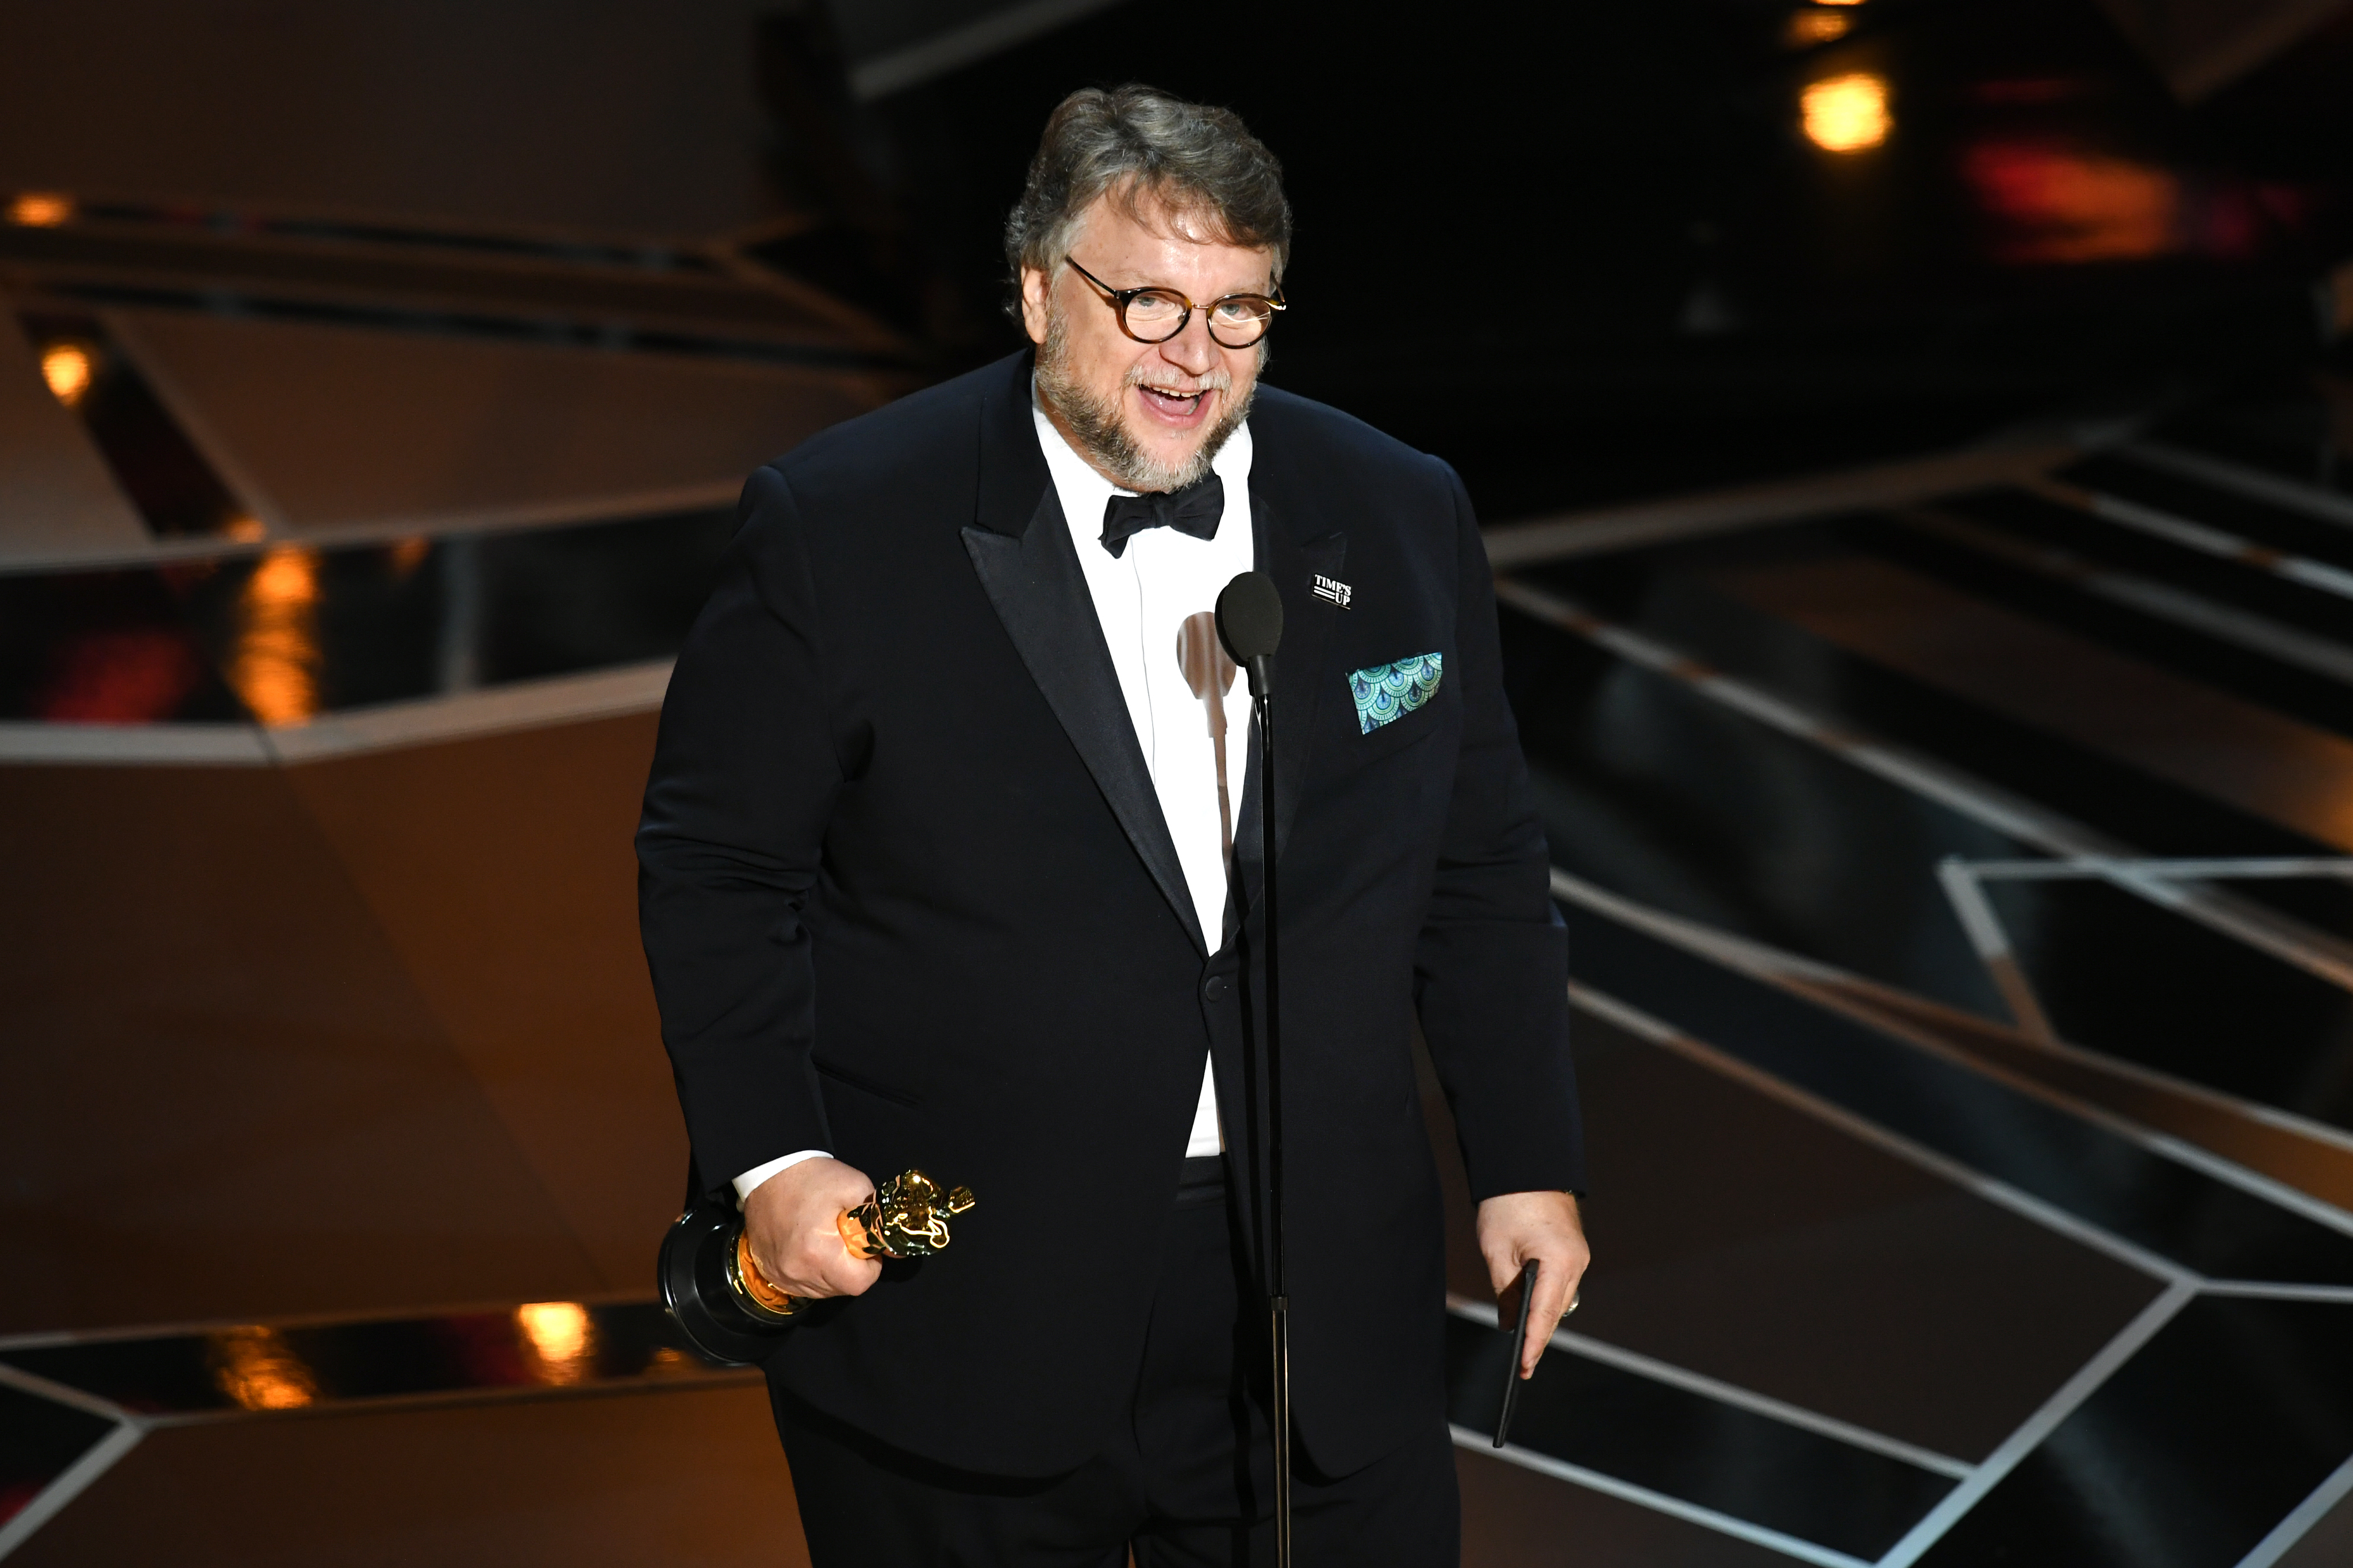 Director Guillermo del Toro's The Shape of Water won best director and best picture at the 90th Academy Awards.